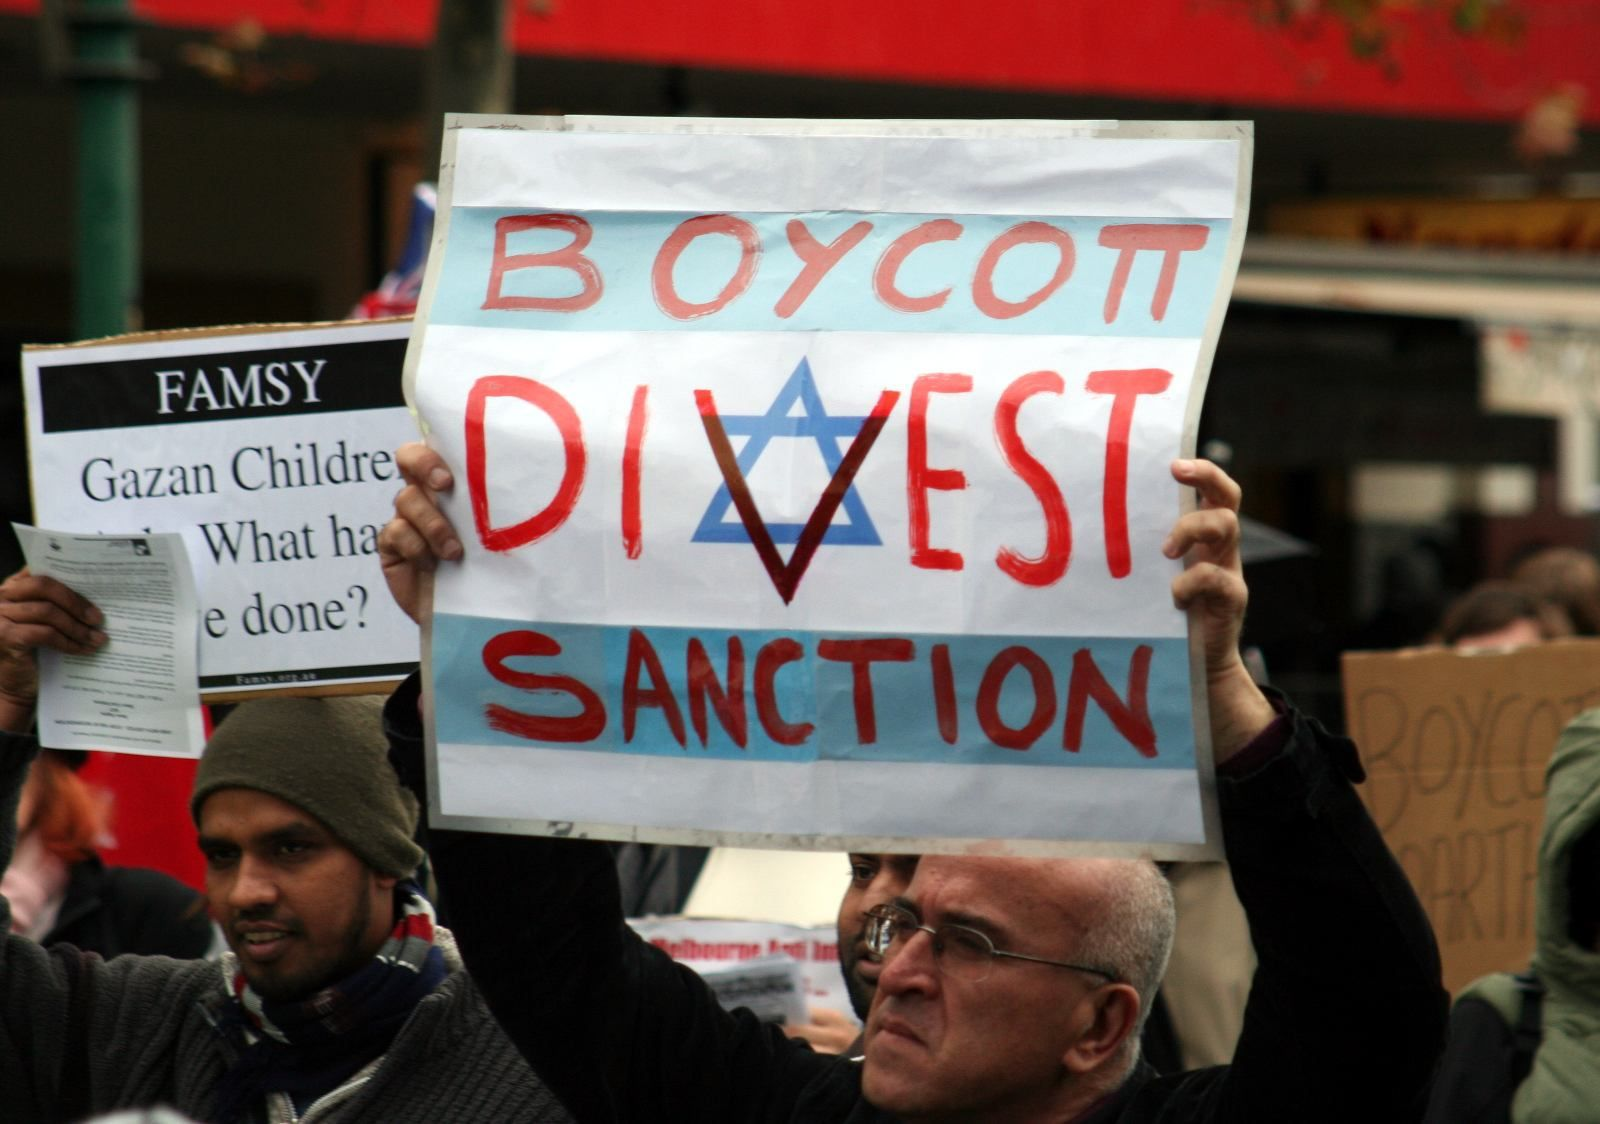 Irish student union joins boycott Israel campaign  (Press TV)